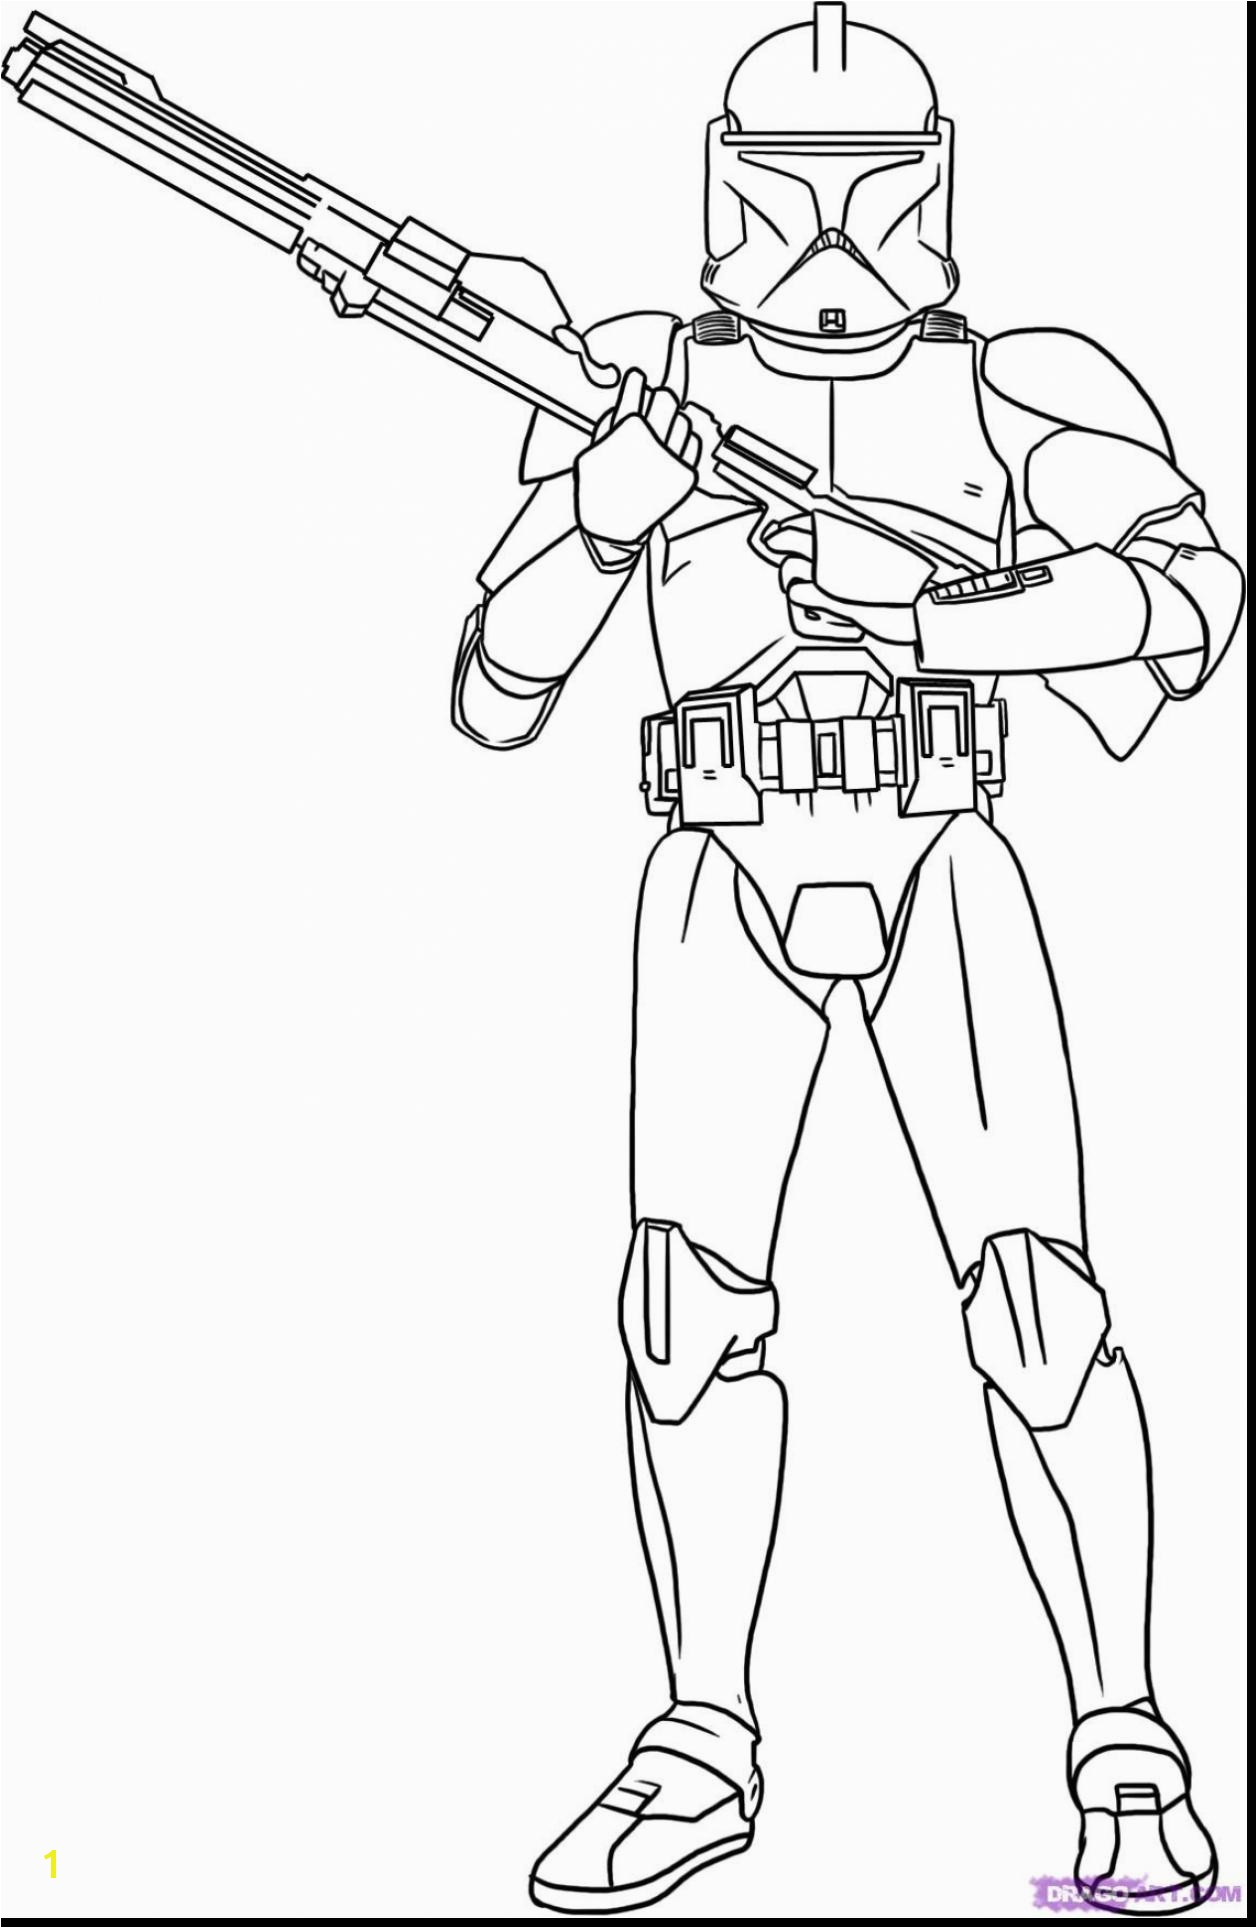 mander Cody Coloring Page Unique Colorful Clone Wars Clone Trooper Coloring Pages Position s